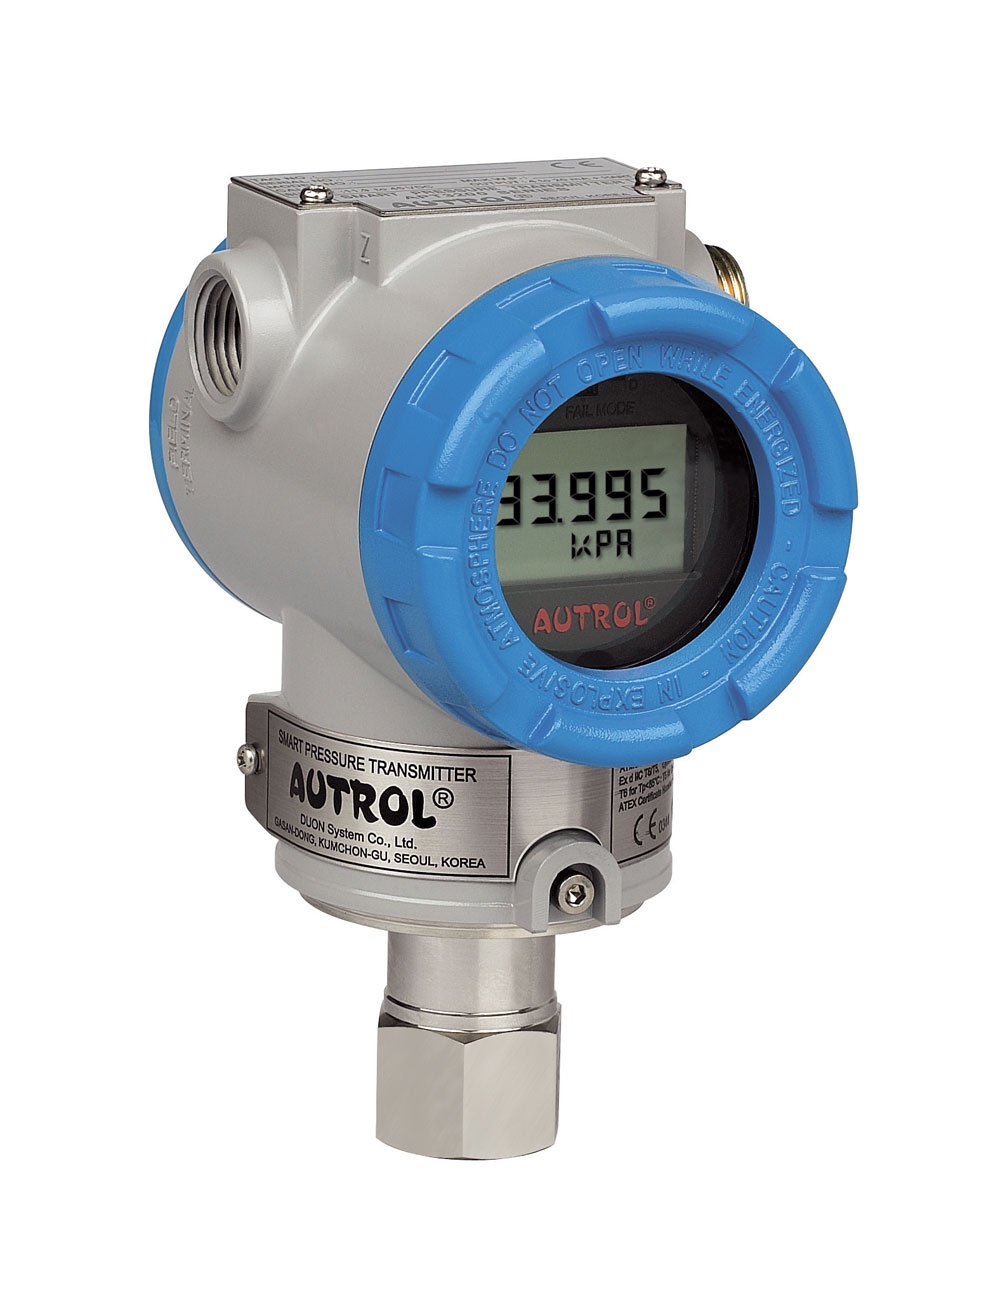 Electronic Measuring Instruments : Smart pressure transmitter manufacturers